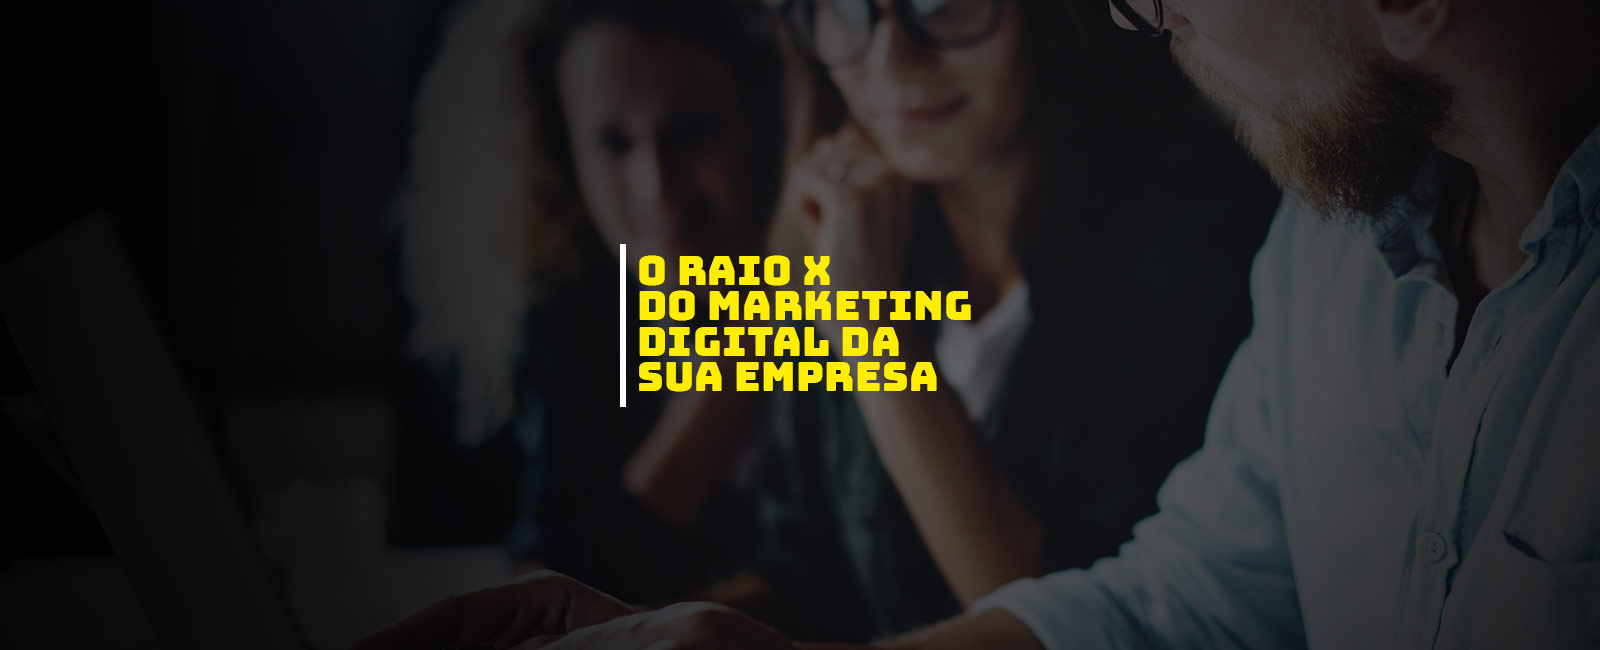 O Raio X do Marketing Digital da sua empresa